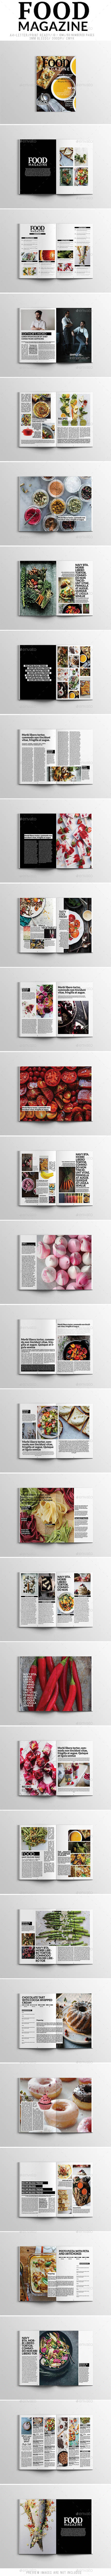 Food Magazine - Magazines Print Templates